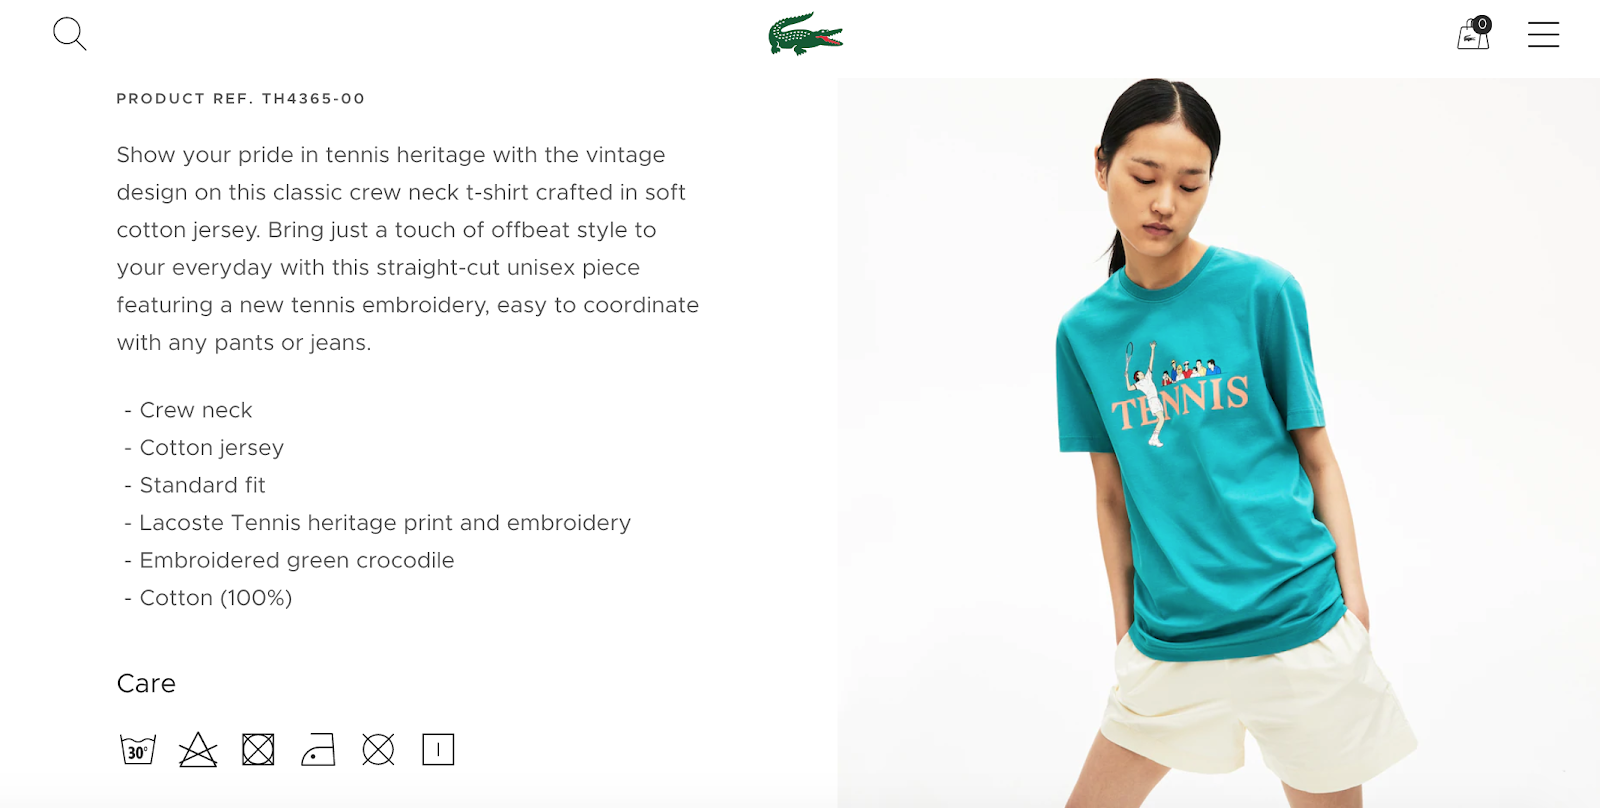 product detail page design best practices lacoste